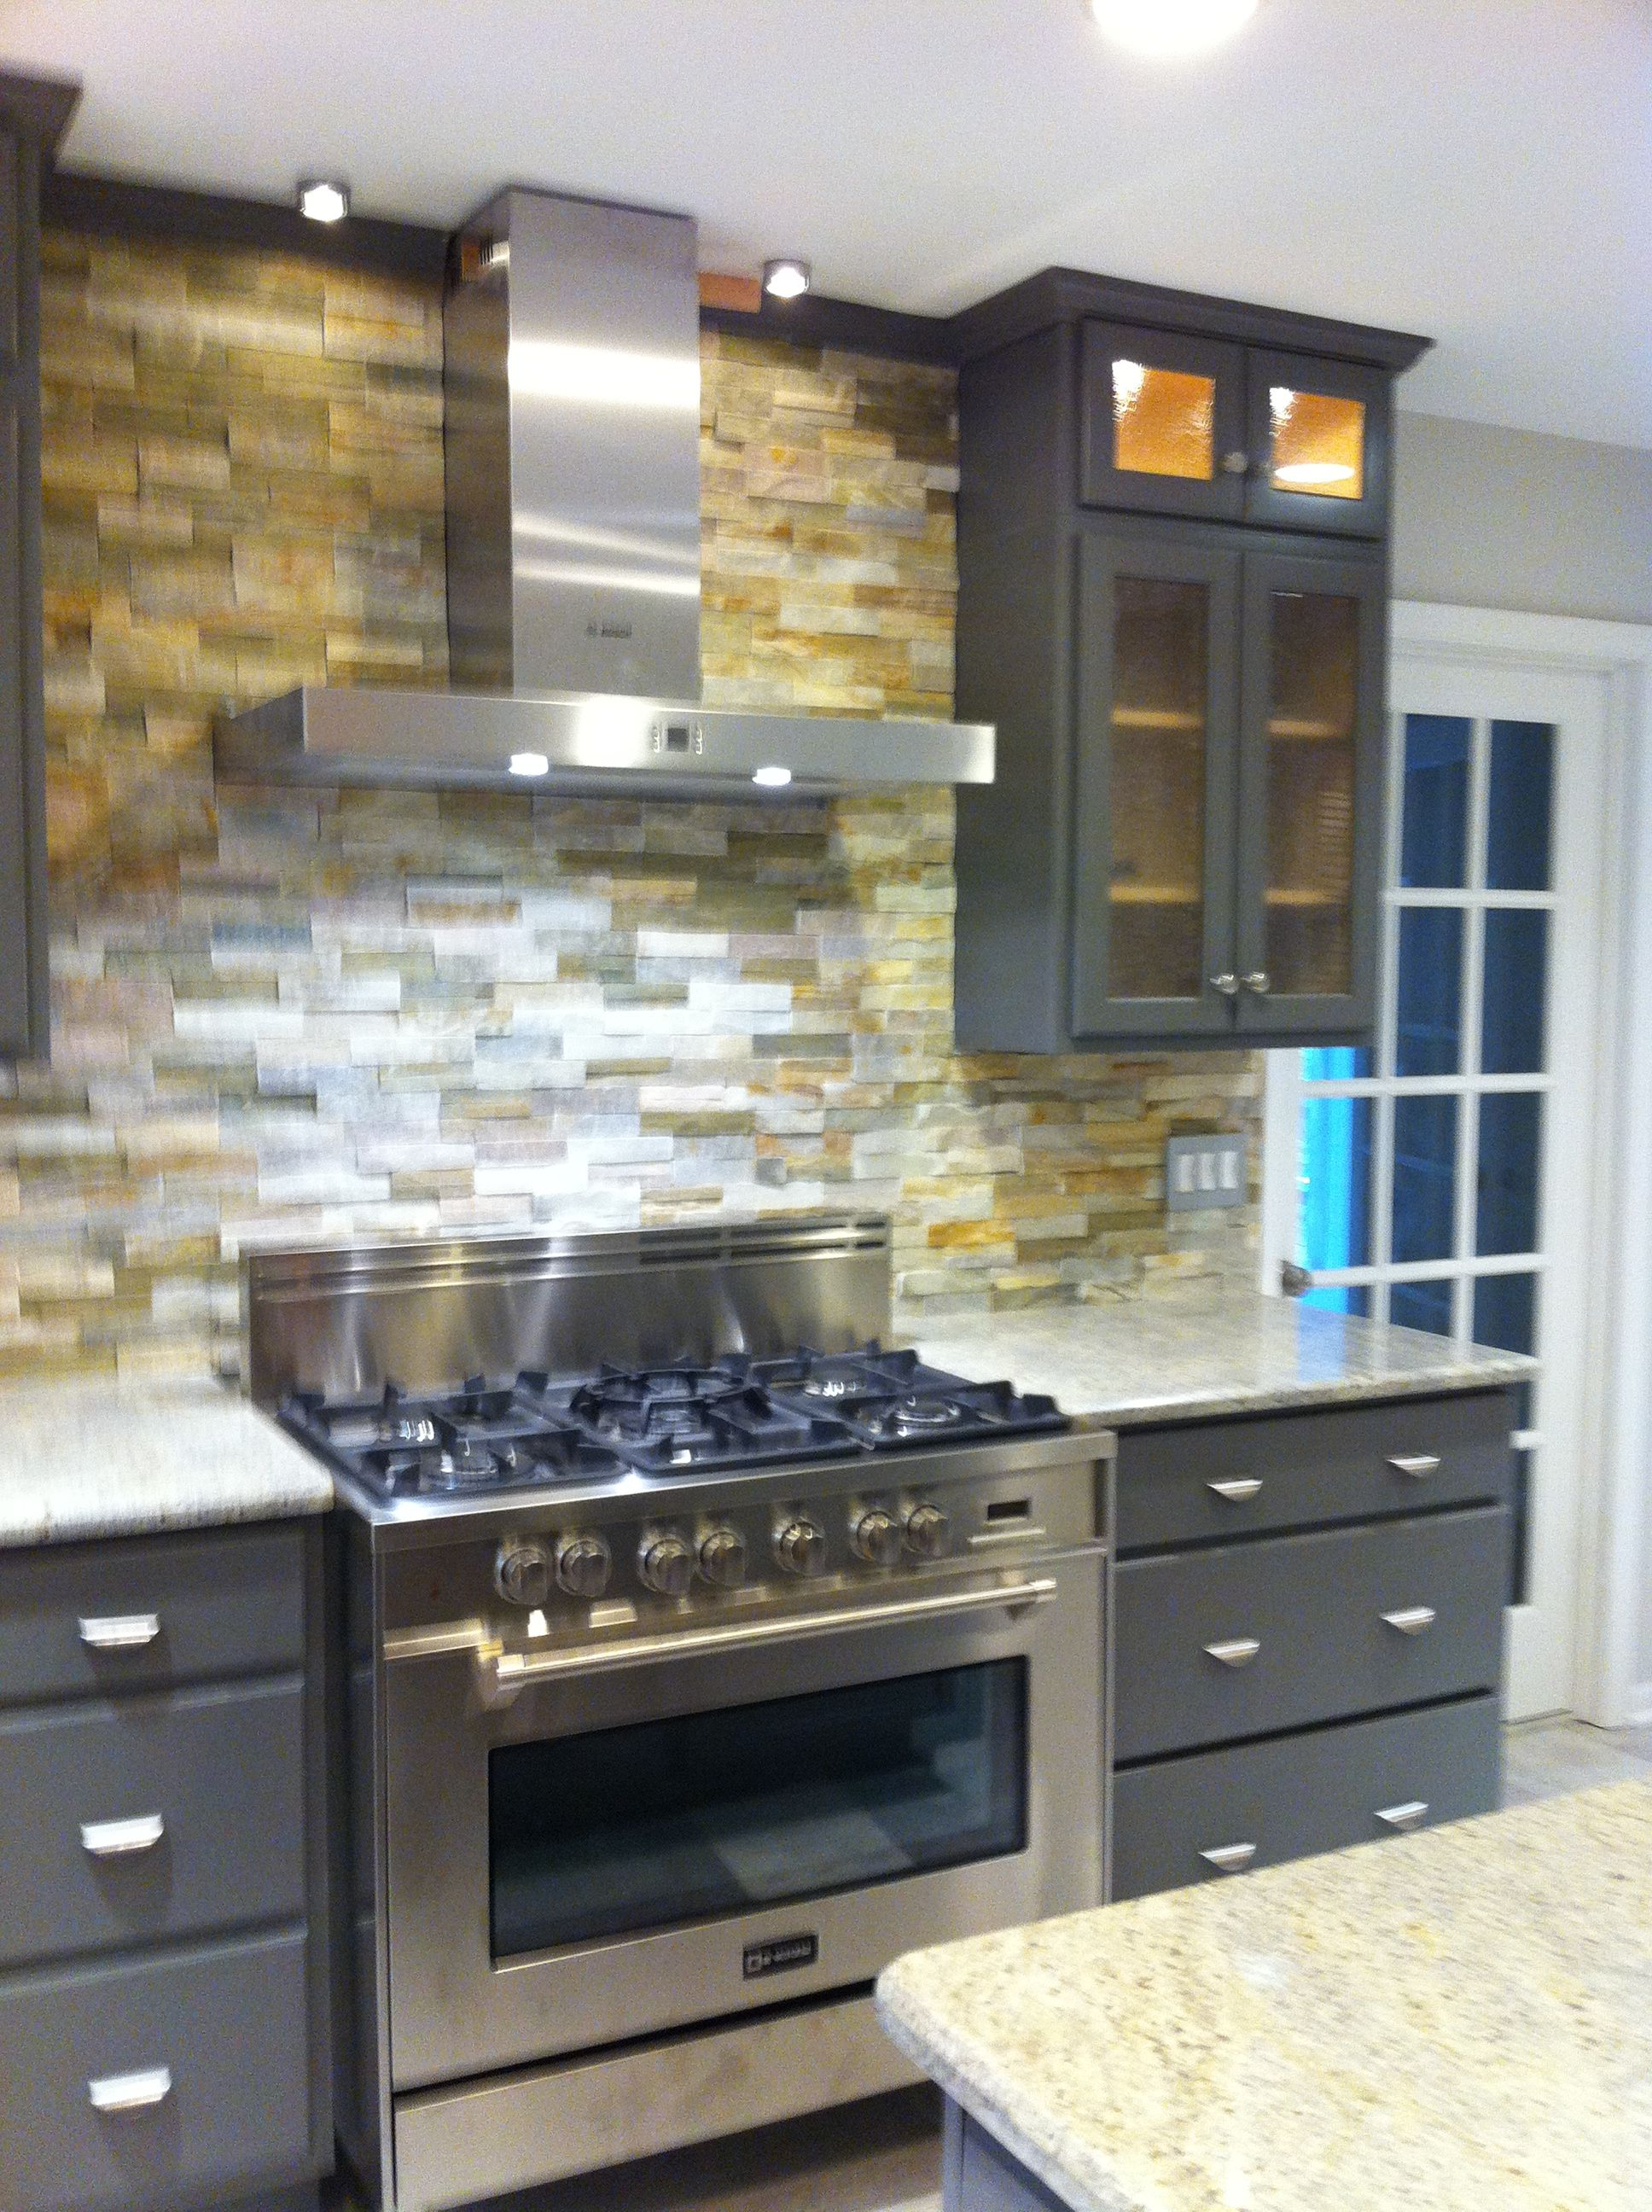 This Backsplash Goes All The Way To The Ceiling The Tile Is Slate And Is Called Ledger Tile It Uses No Grout Kitchen Redo Backsplash Kitchen